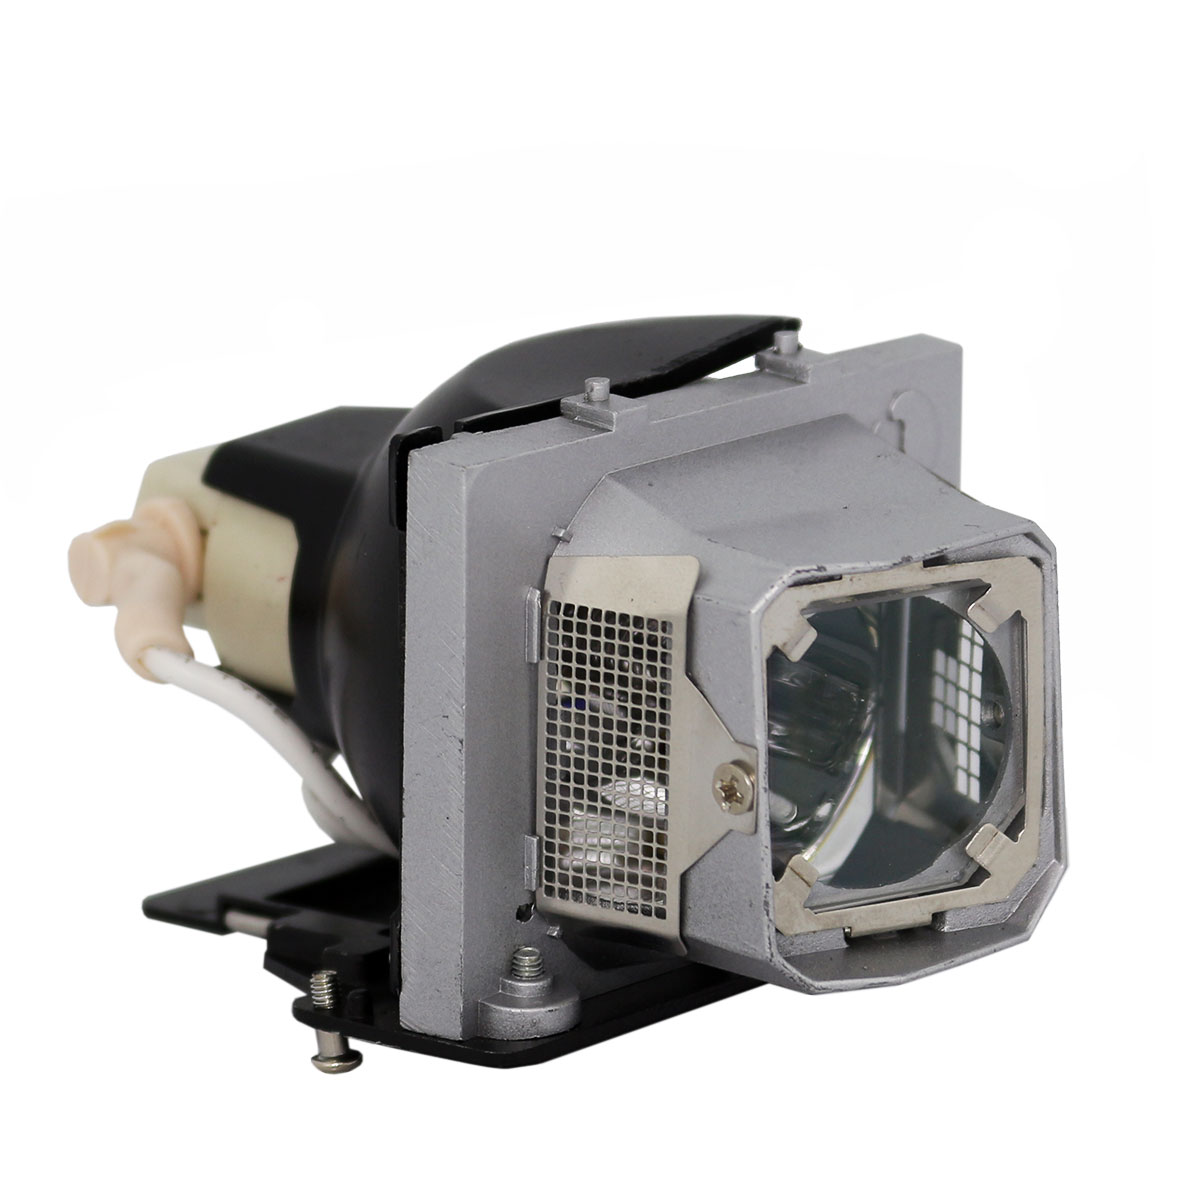 Original Osram Projector Lamp Replacement with Housing for Dell M409X - image 4 of 5